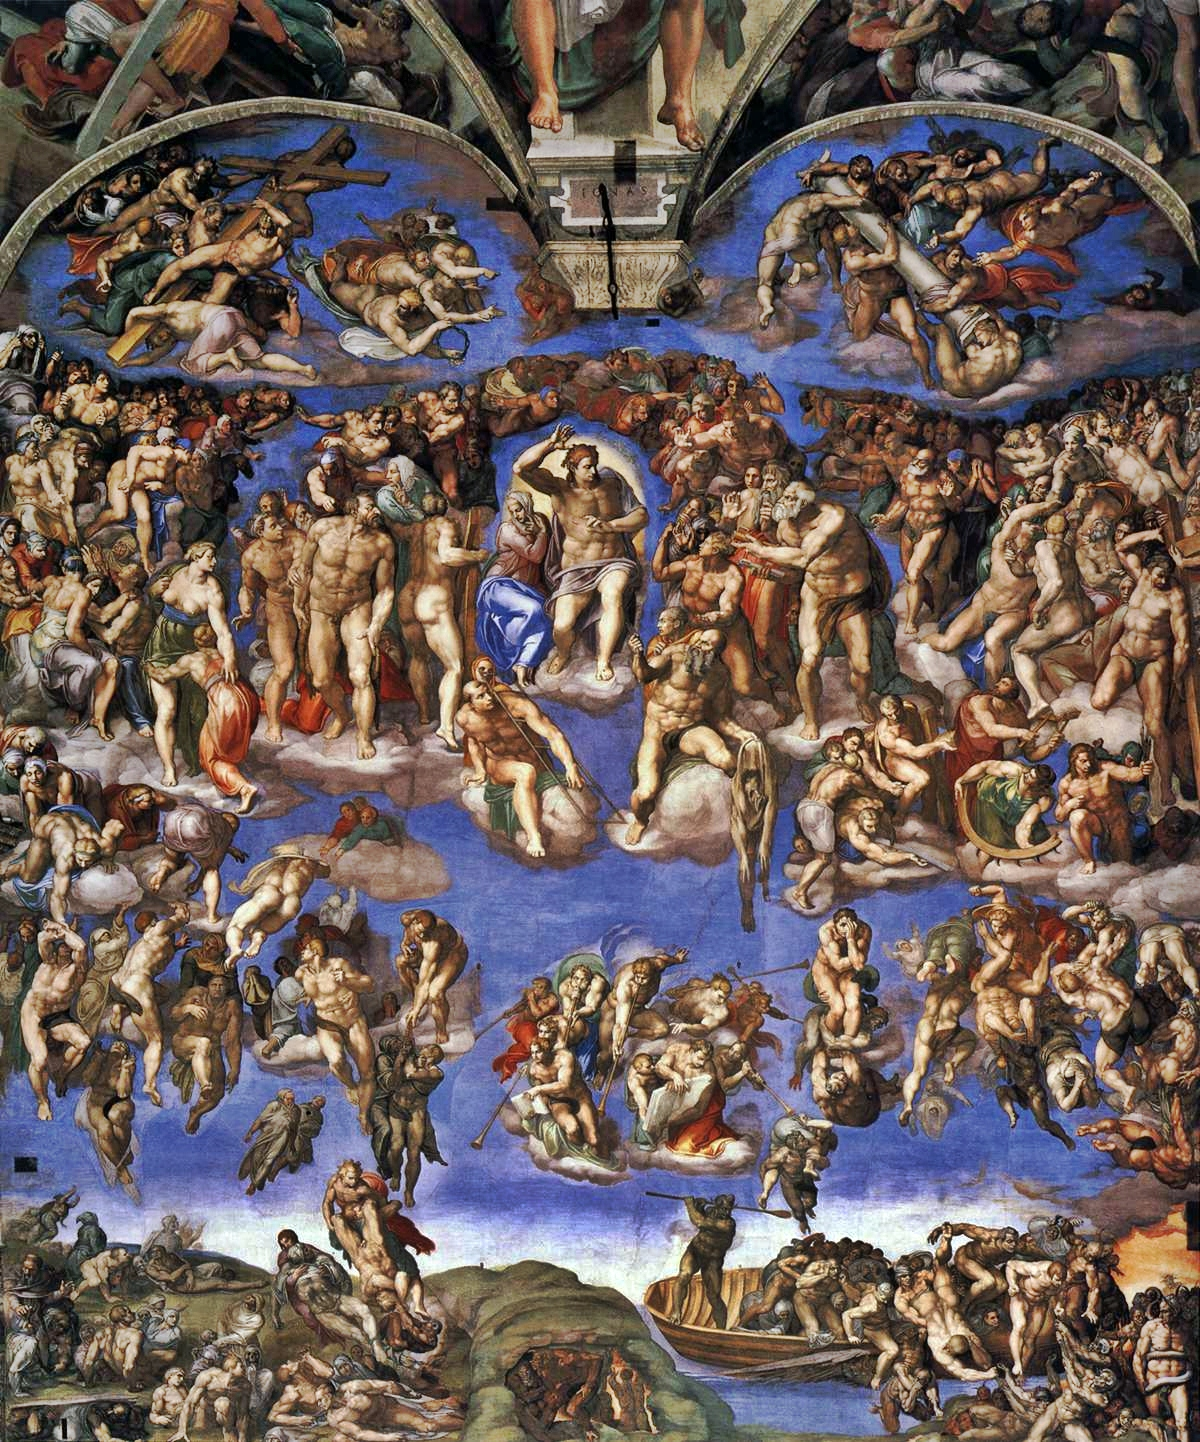 The Last Judgment. Michelangelo Buonarroti (1475–1564).